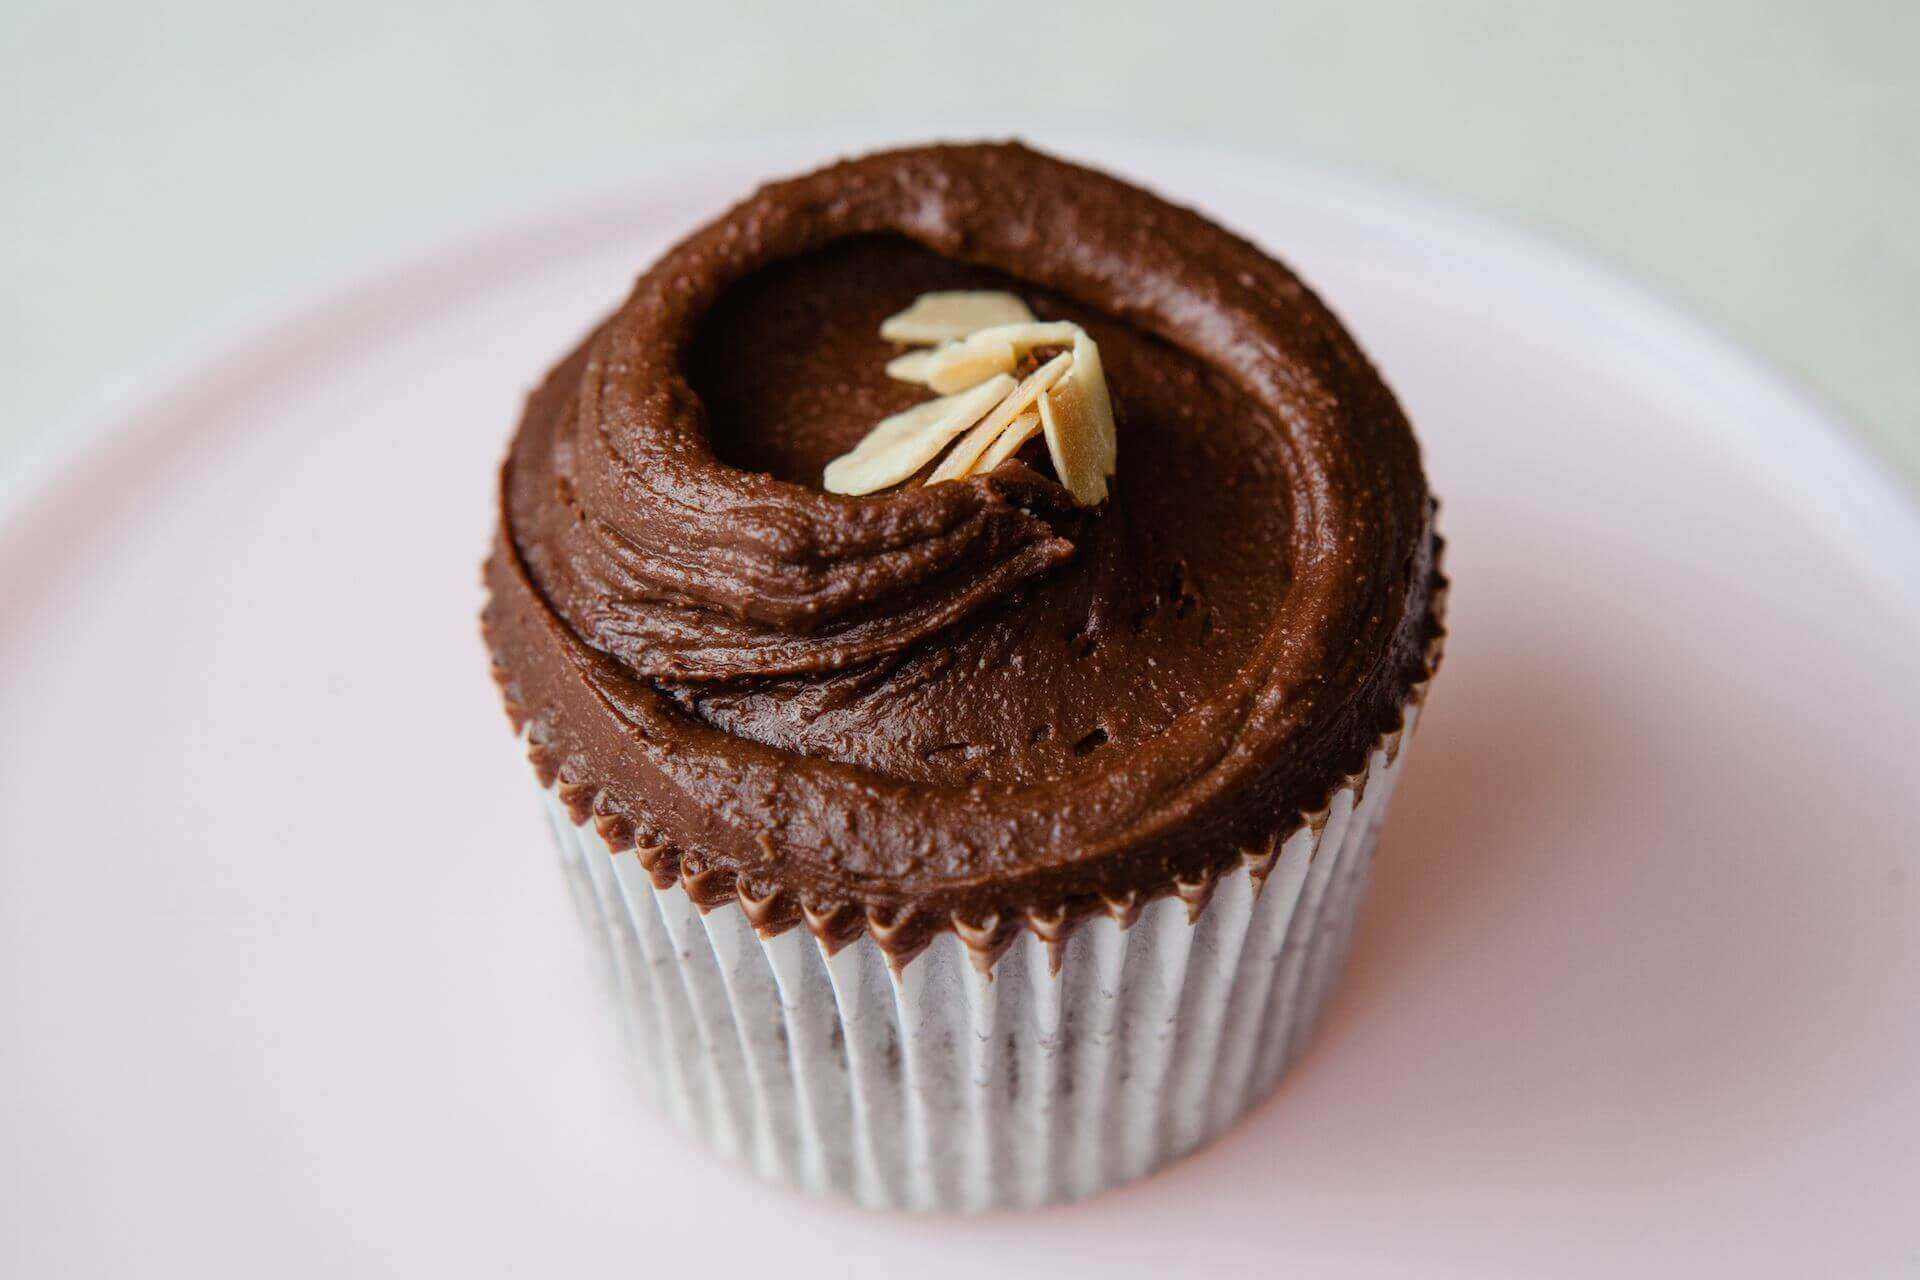 Gluten-Free Chocolate and Almond Cupcakes